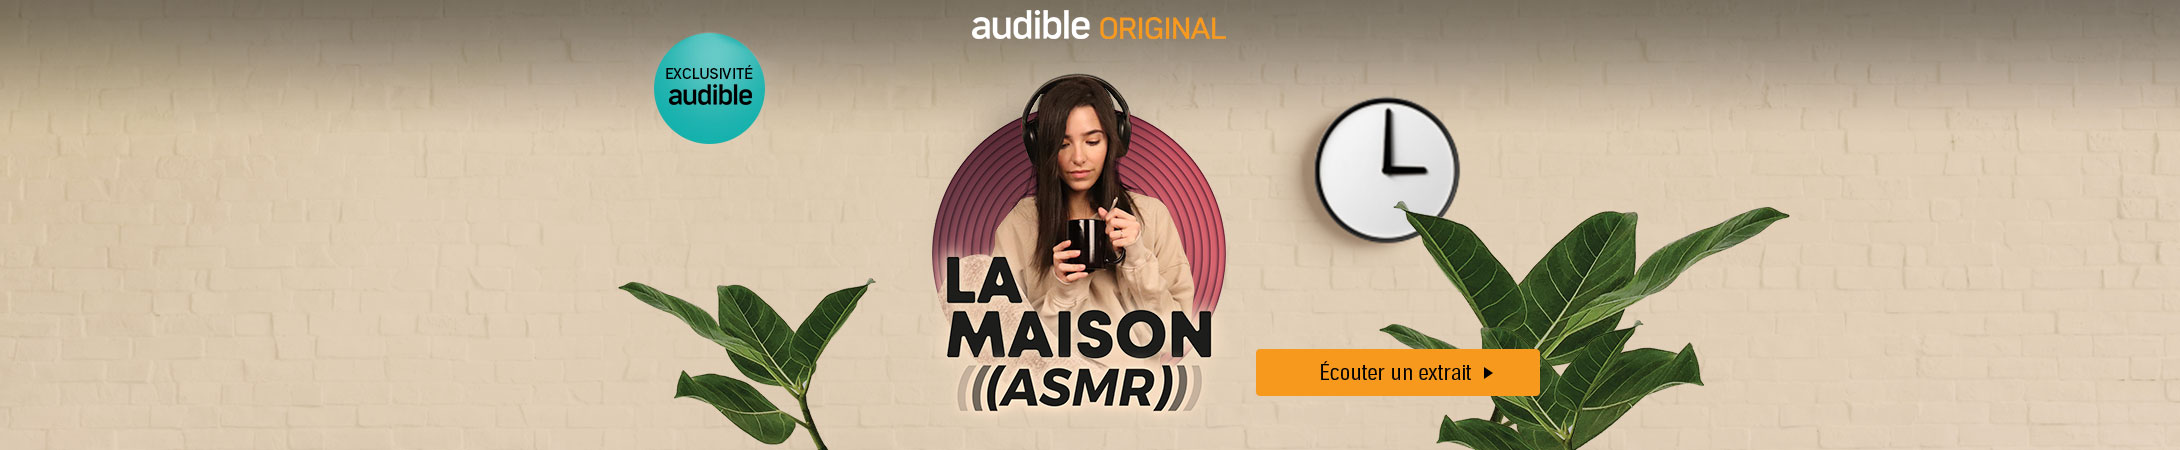 Audible Original : La maison ASMR